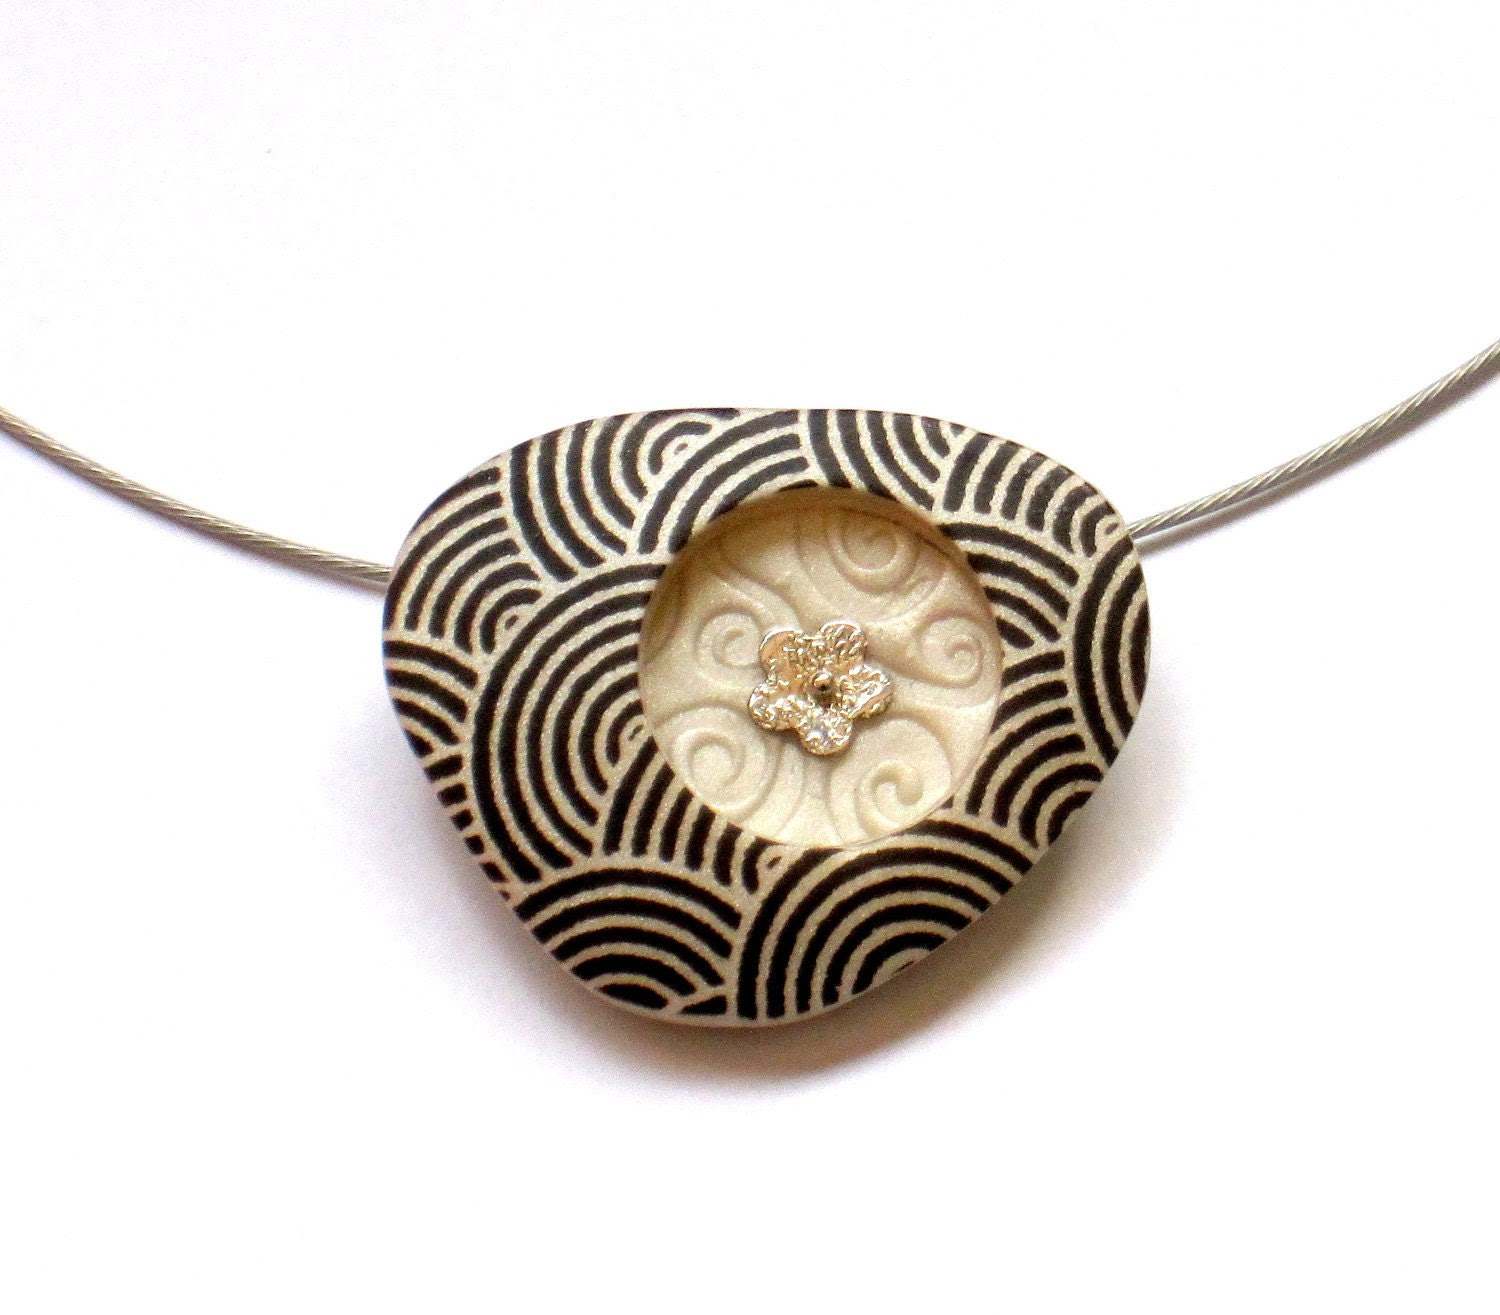 Polymer Clay Pendant Necklace Modern Art jewelry black spiral print on pearl triangle shape - OrlyFuchsGalchen